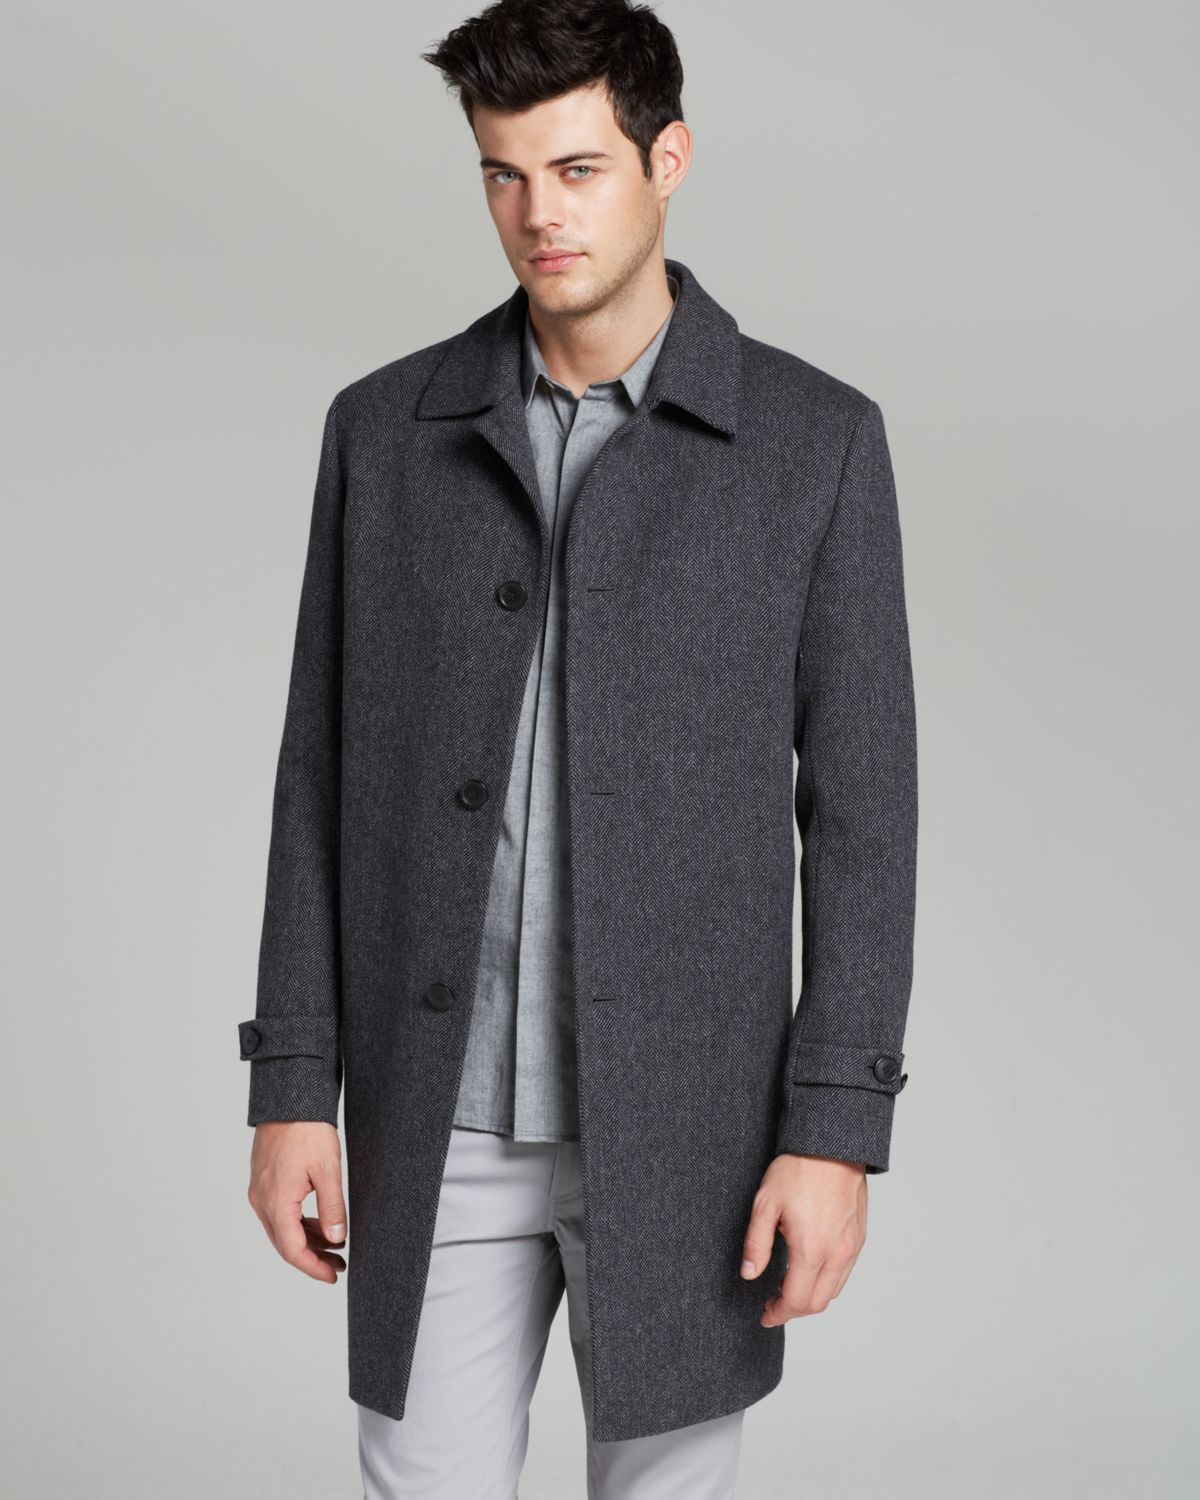 Theory Wallice Vandrien Herringbone Coat in Gray for Men | Lyst